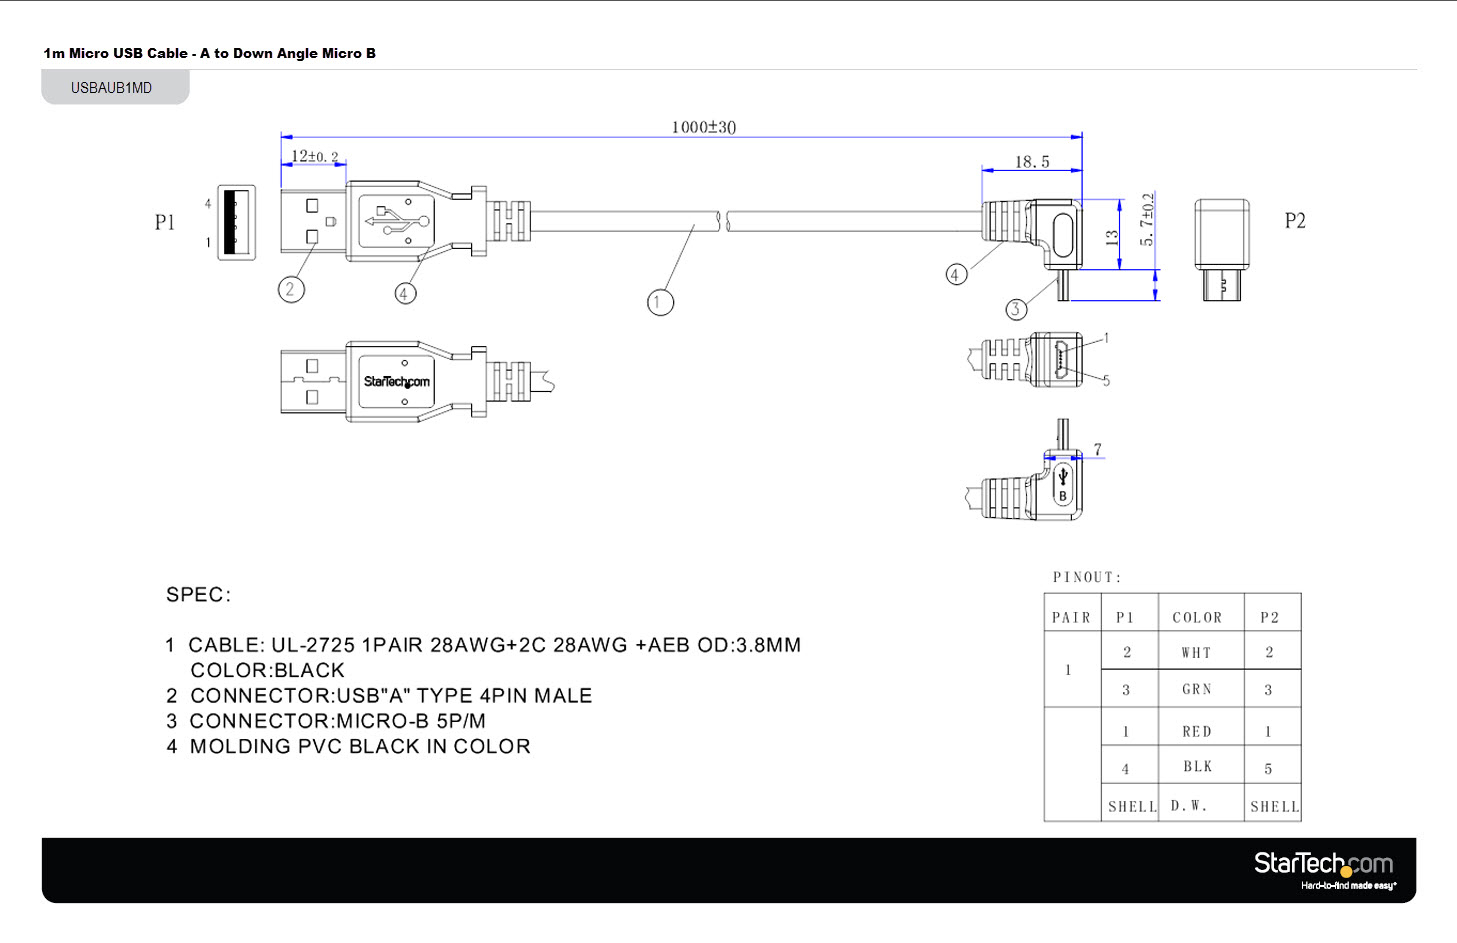 usb to rj45 cable wiring diagram Download-Usb to Cat5 Wiring Diagram New 1m Usb to Down Angle Micro Usb Cable Usb 2 14-t